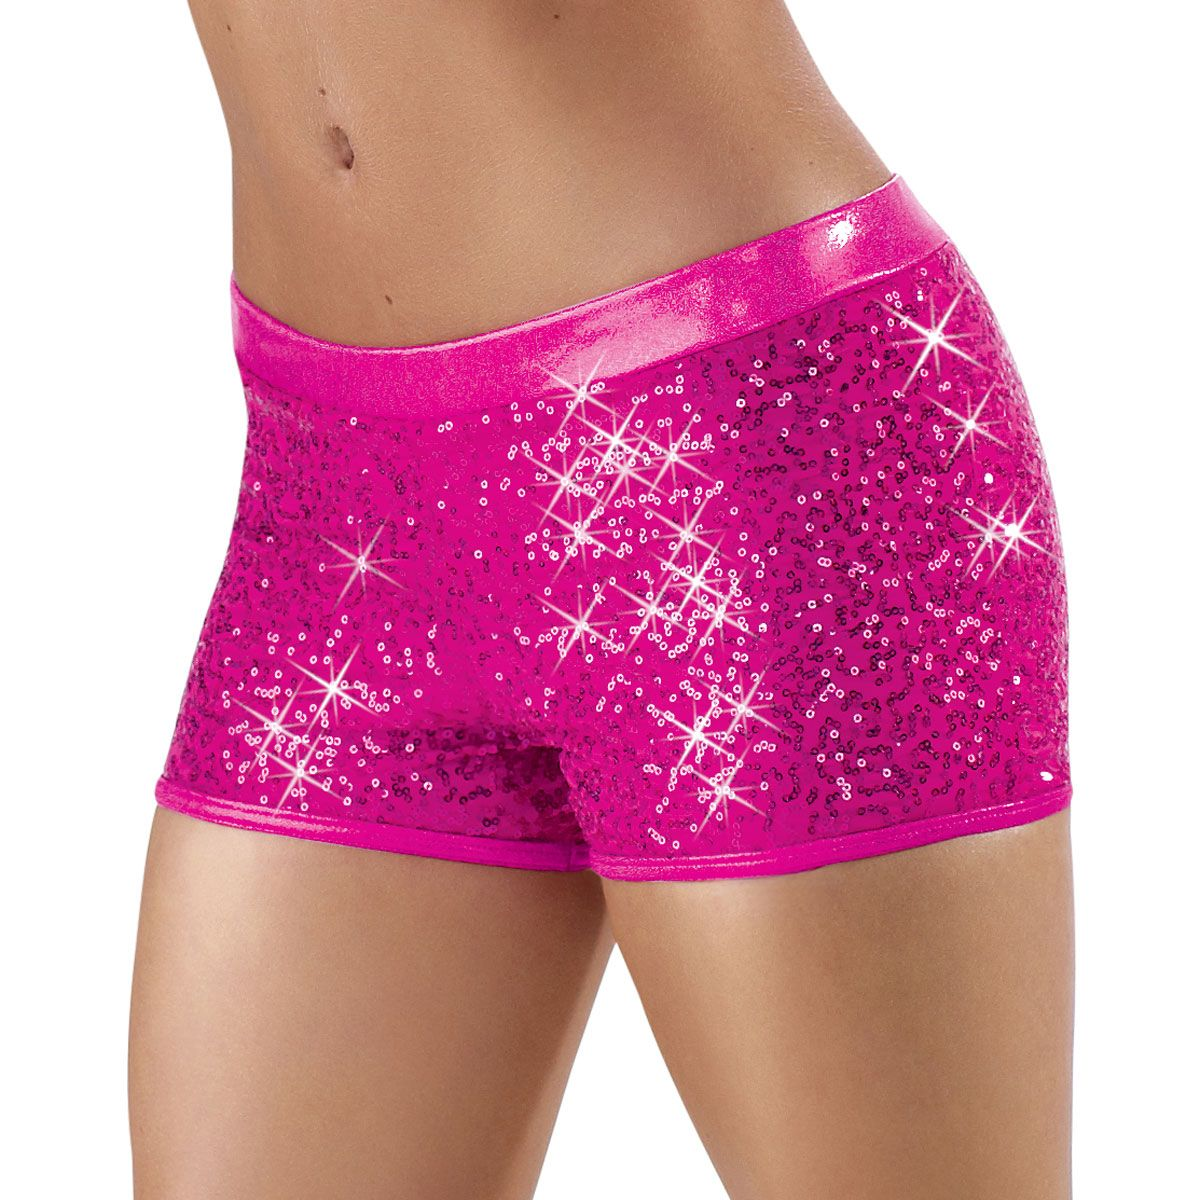 Plus Size Sexy Sequin Black Shorts - Shorts Are Cut About 3